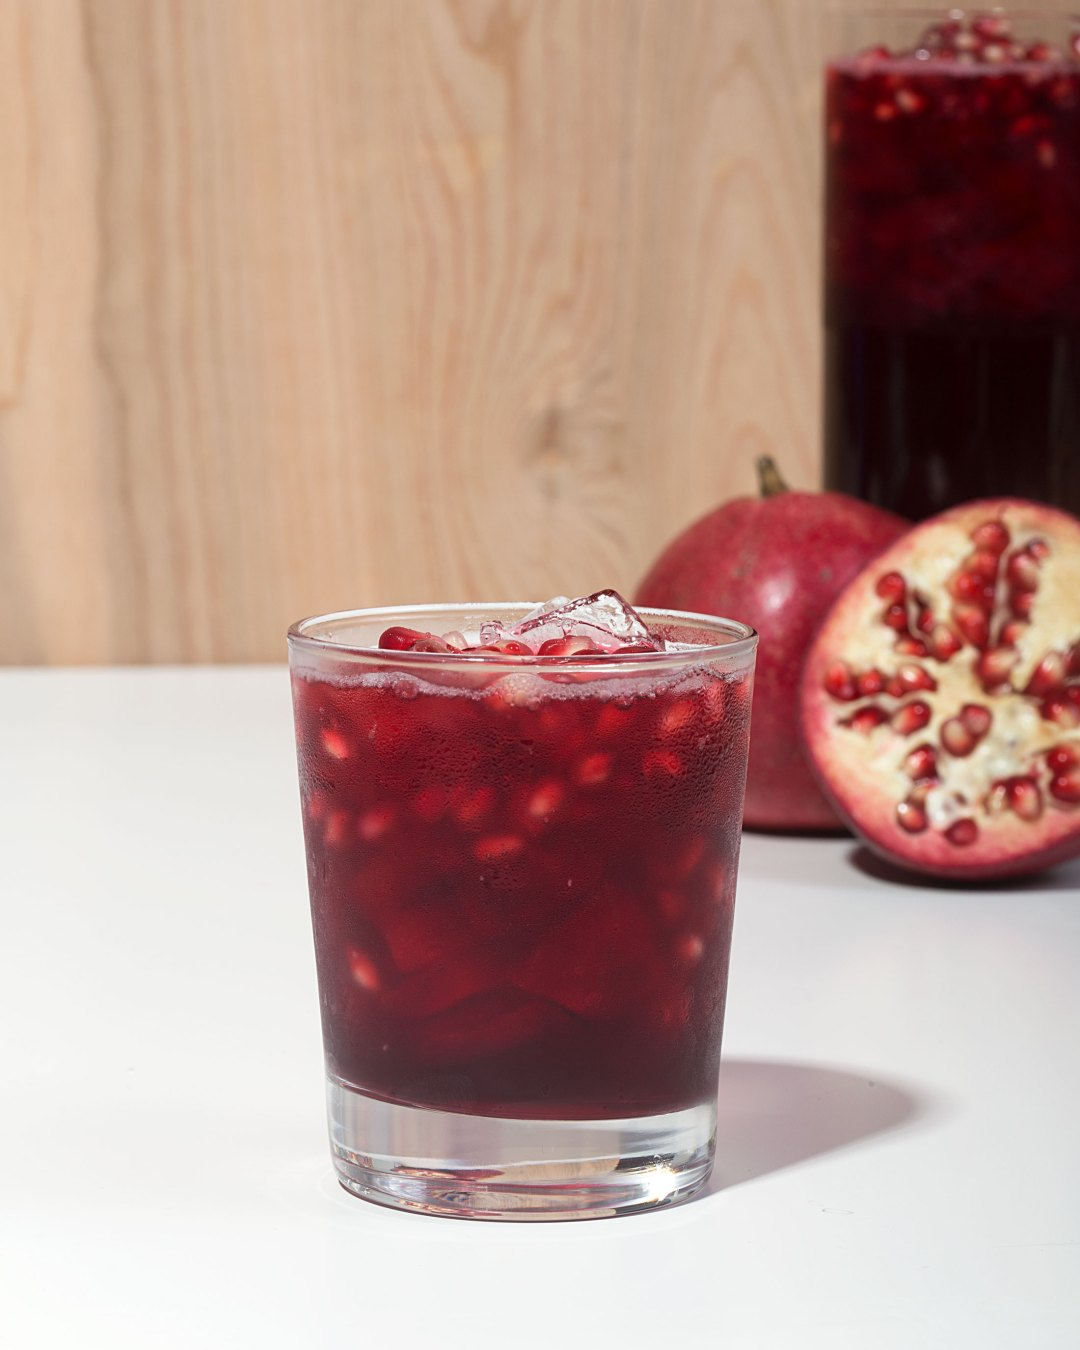 Ponche de Granada (Pomegranate Punch)